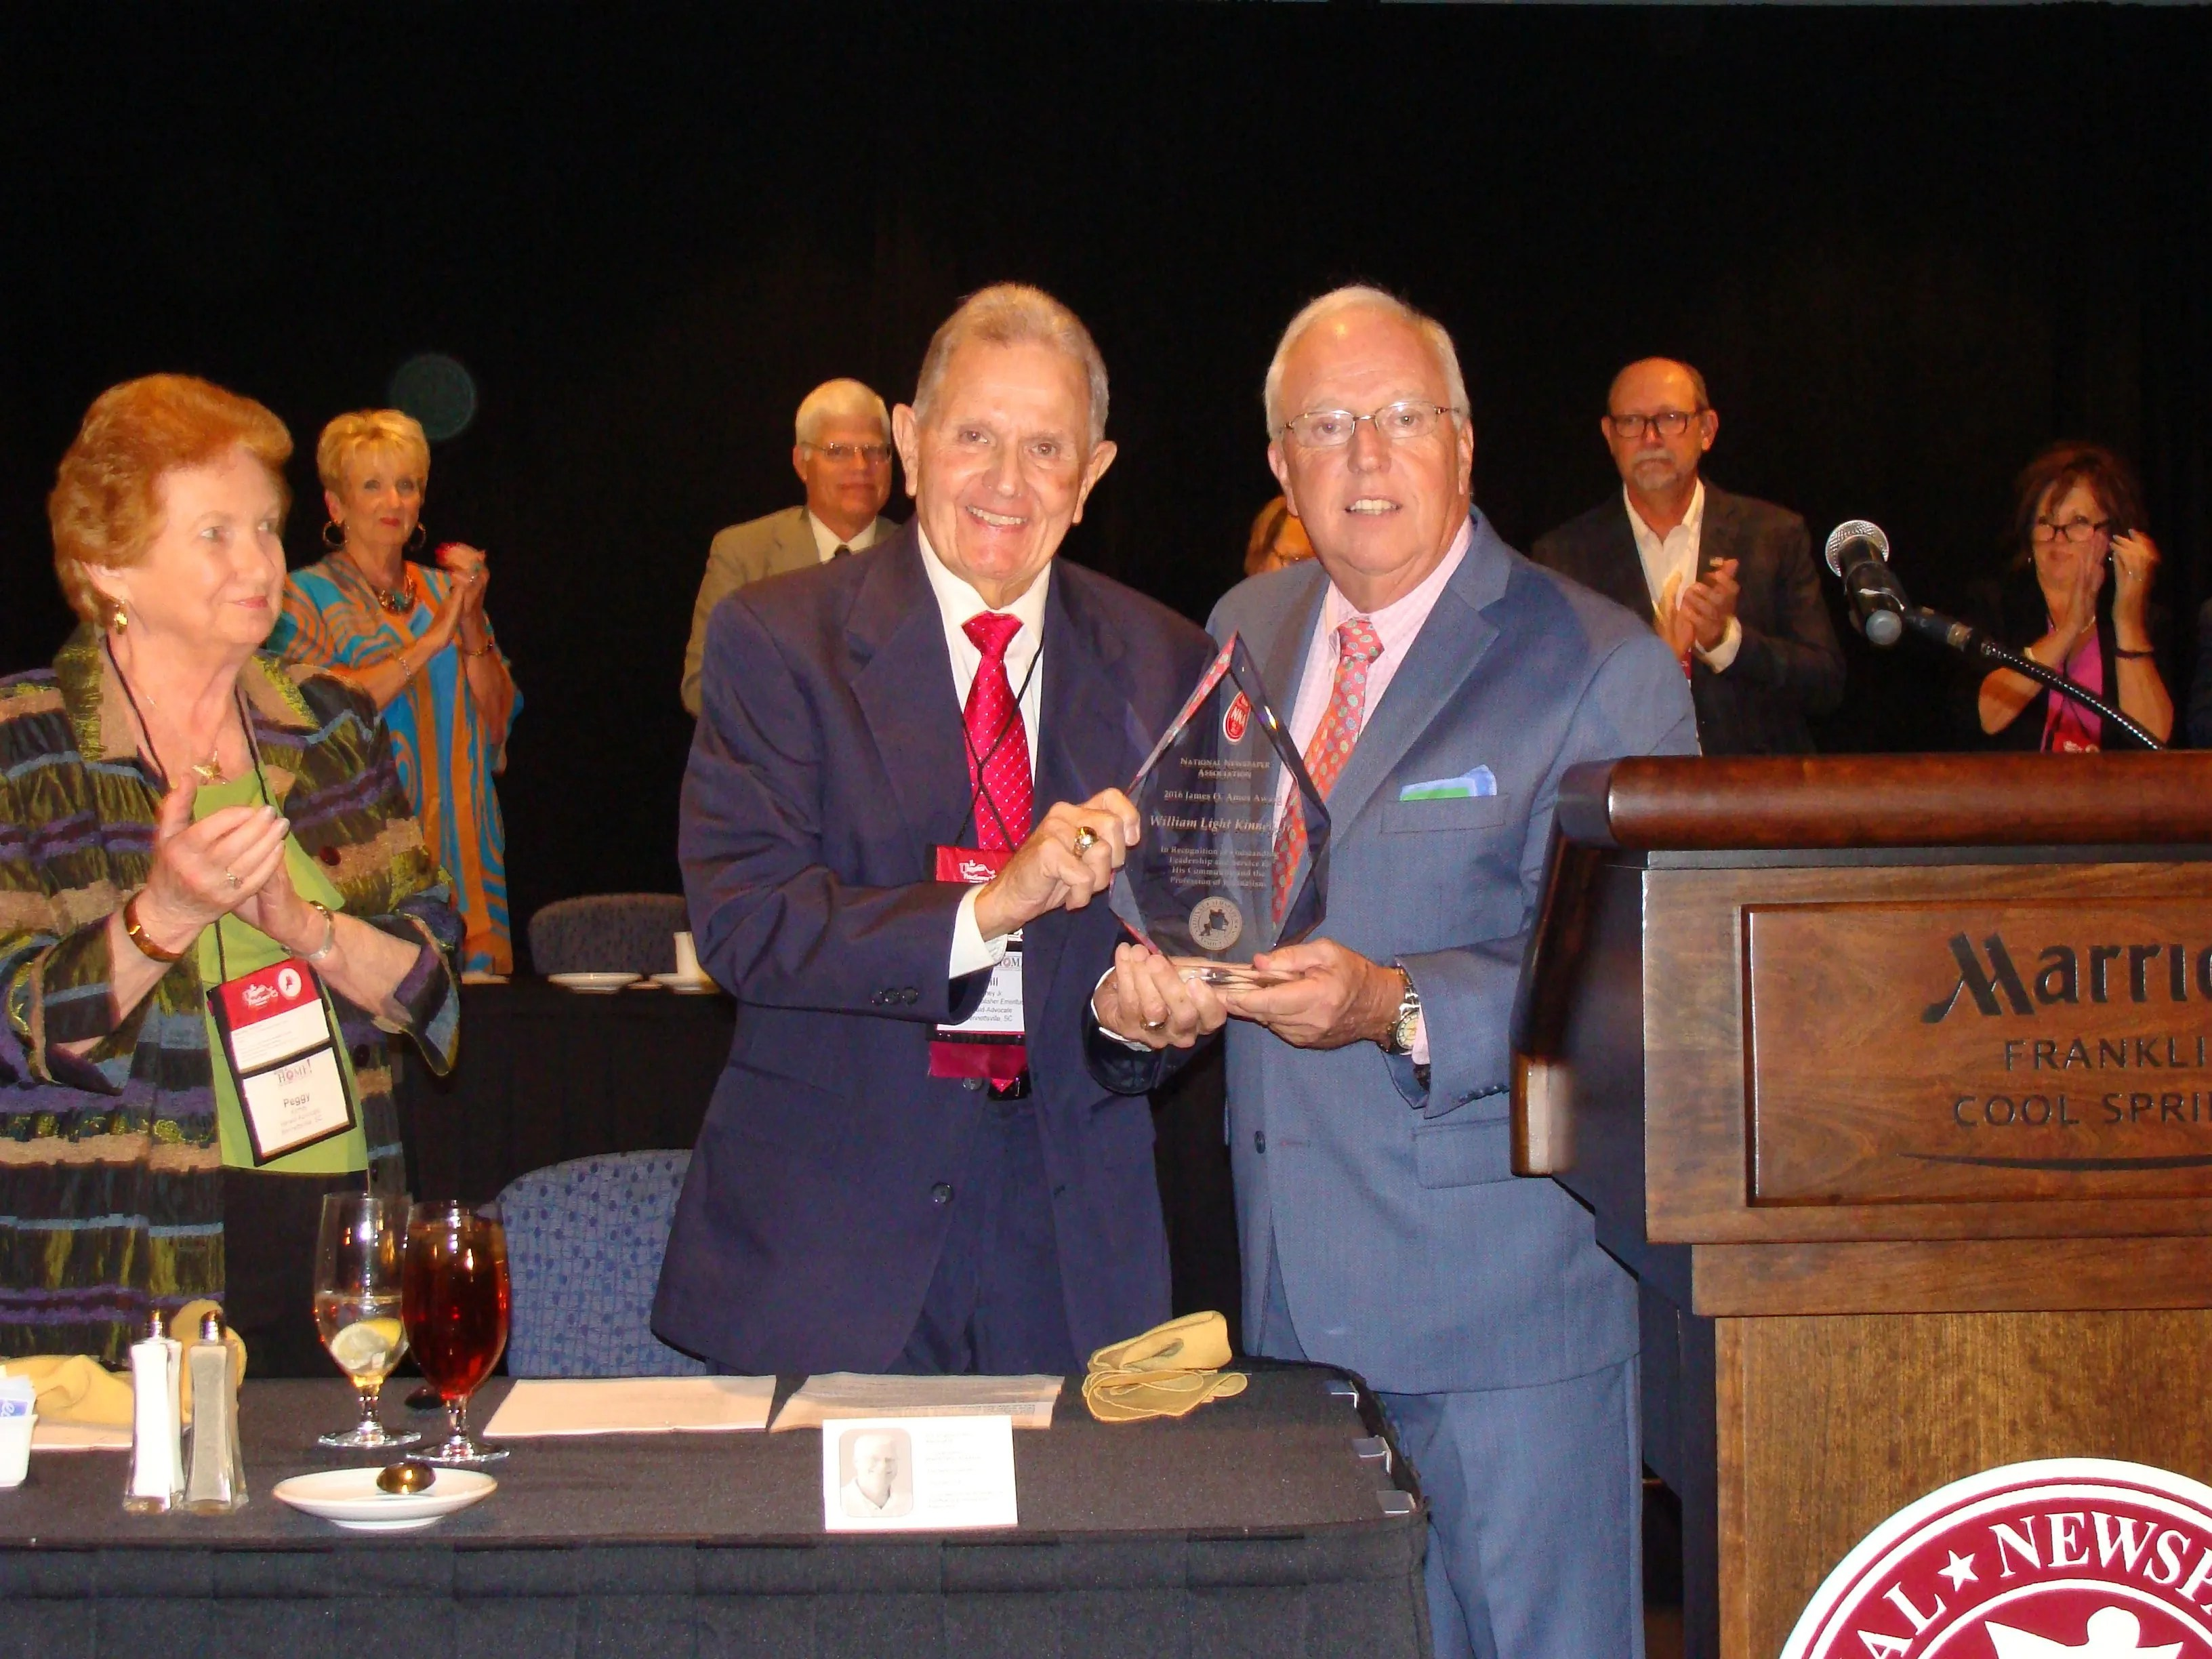 Bill Kinney, center, is presented with the James O. Amos award by NNA President Chip Hutcheson, right, at the 2016 NNA Annual Convention in Franklin, Tenn. Kinney's wife Peggy is on the far left.